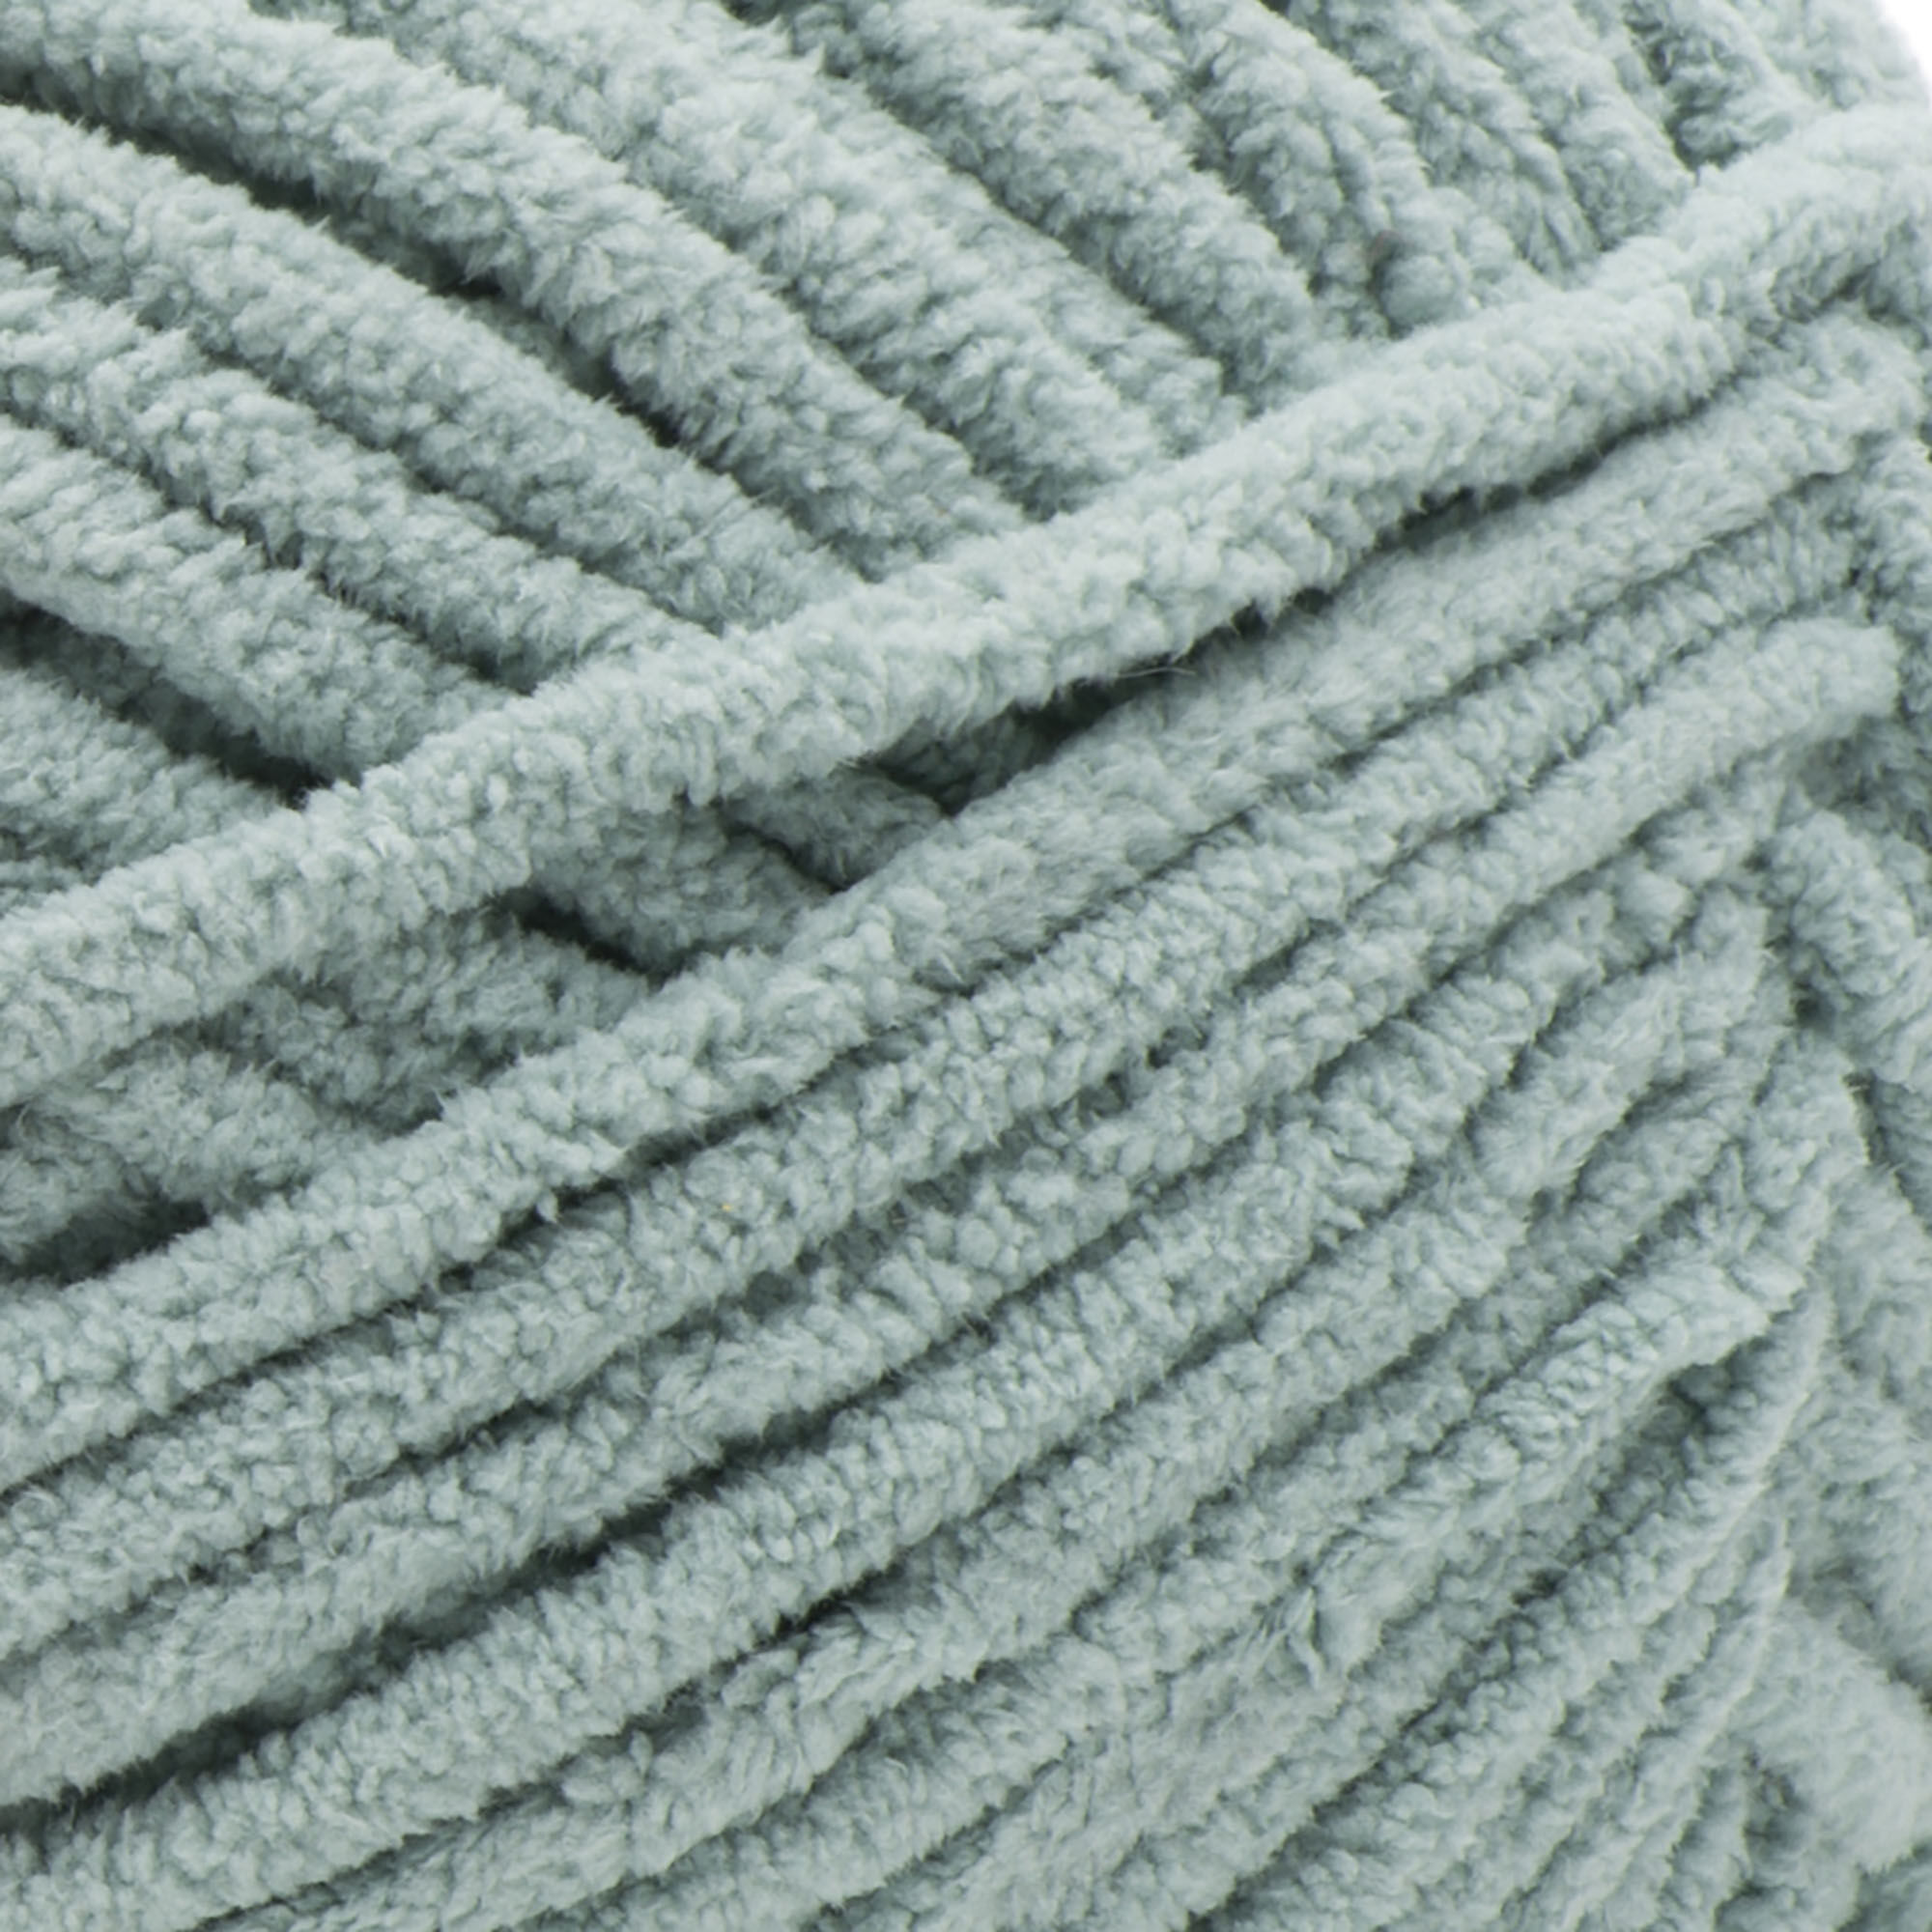 Bernat Blanket Yarn (300g/10 5 oz), Misty Green | Yarnspirations